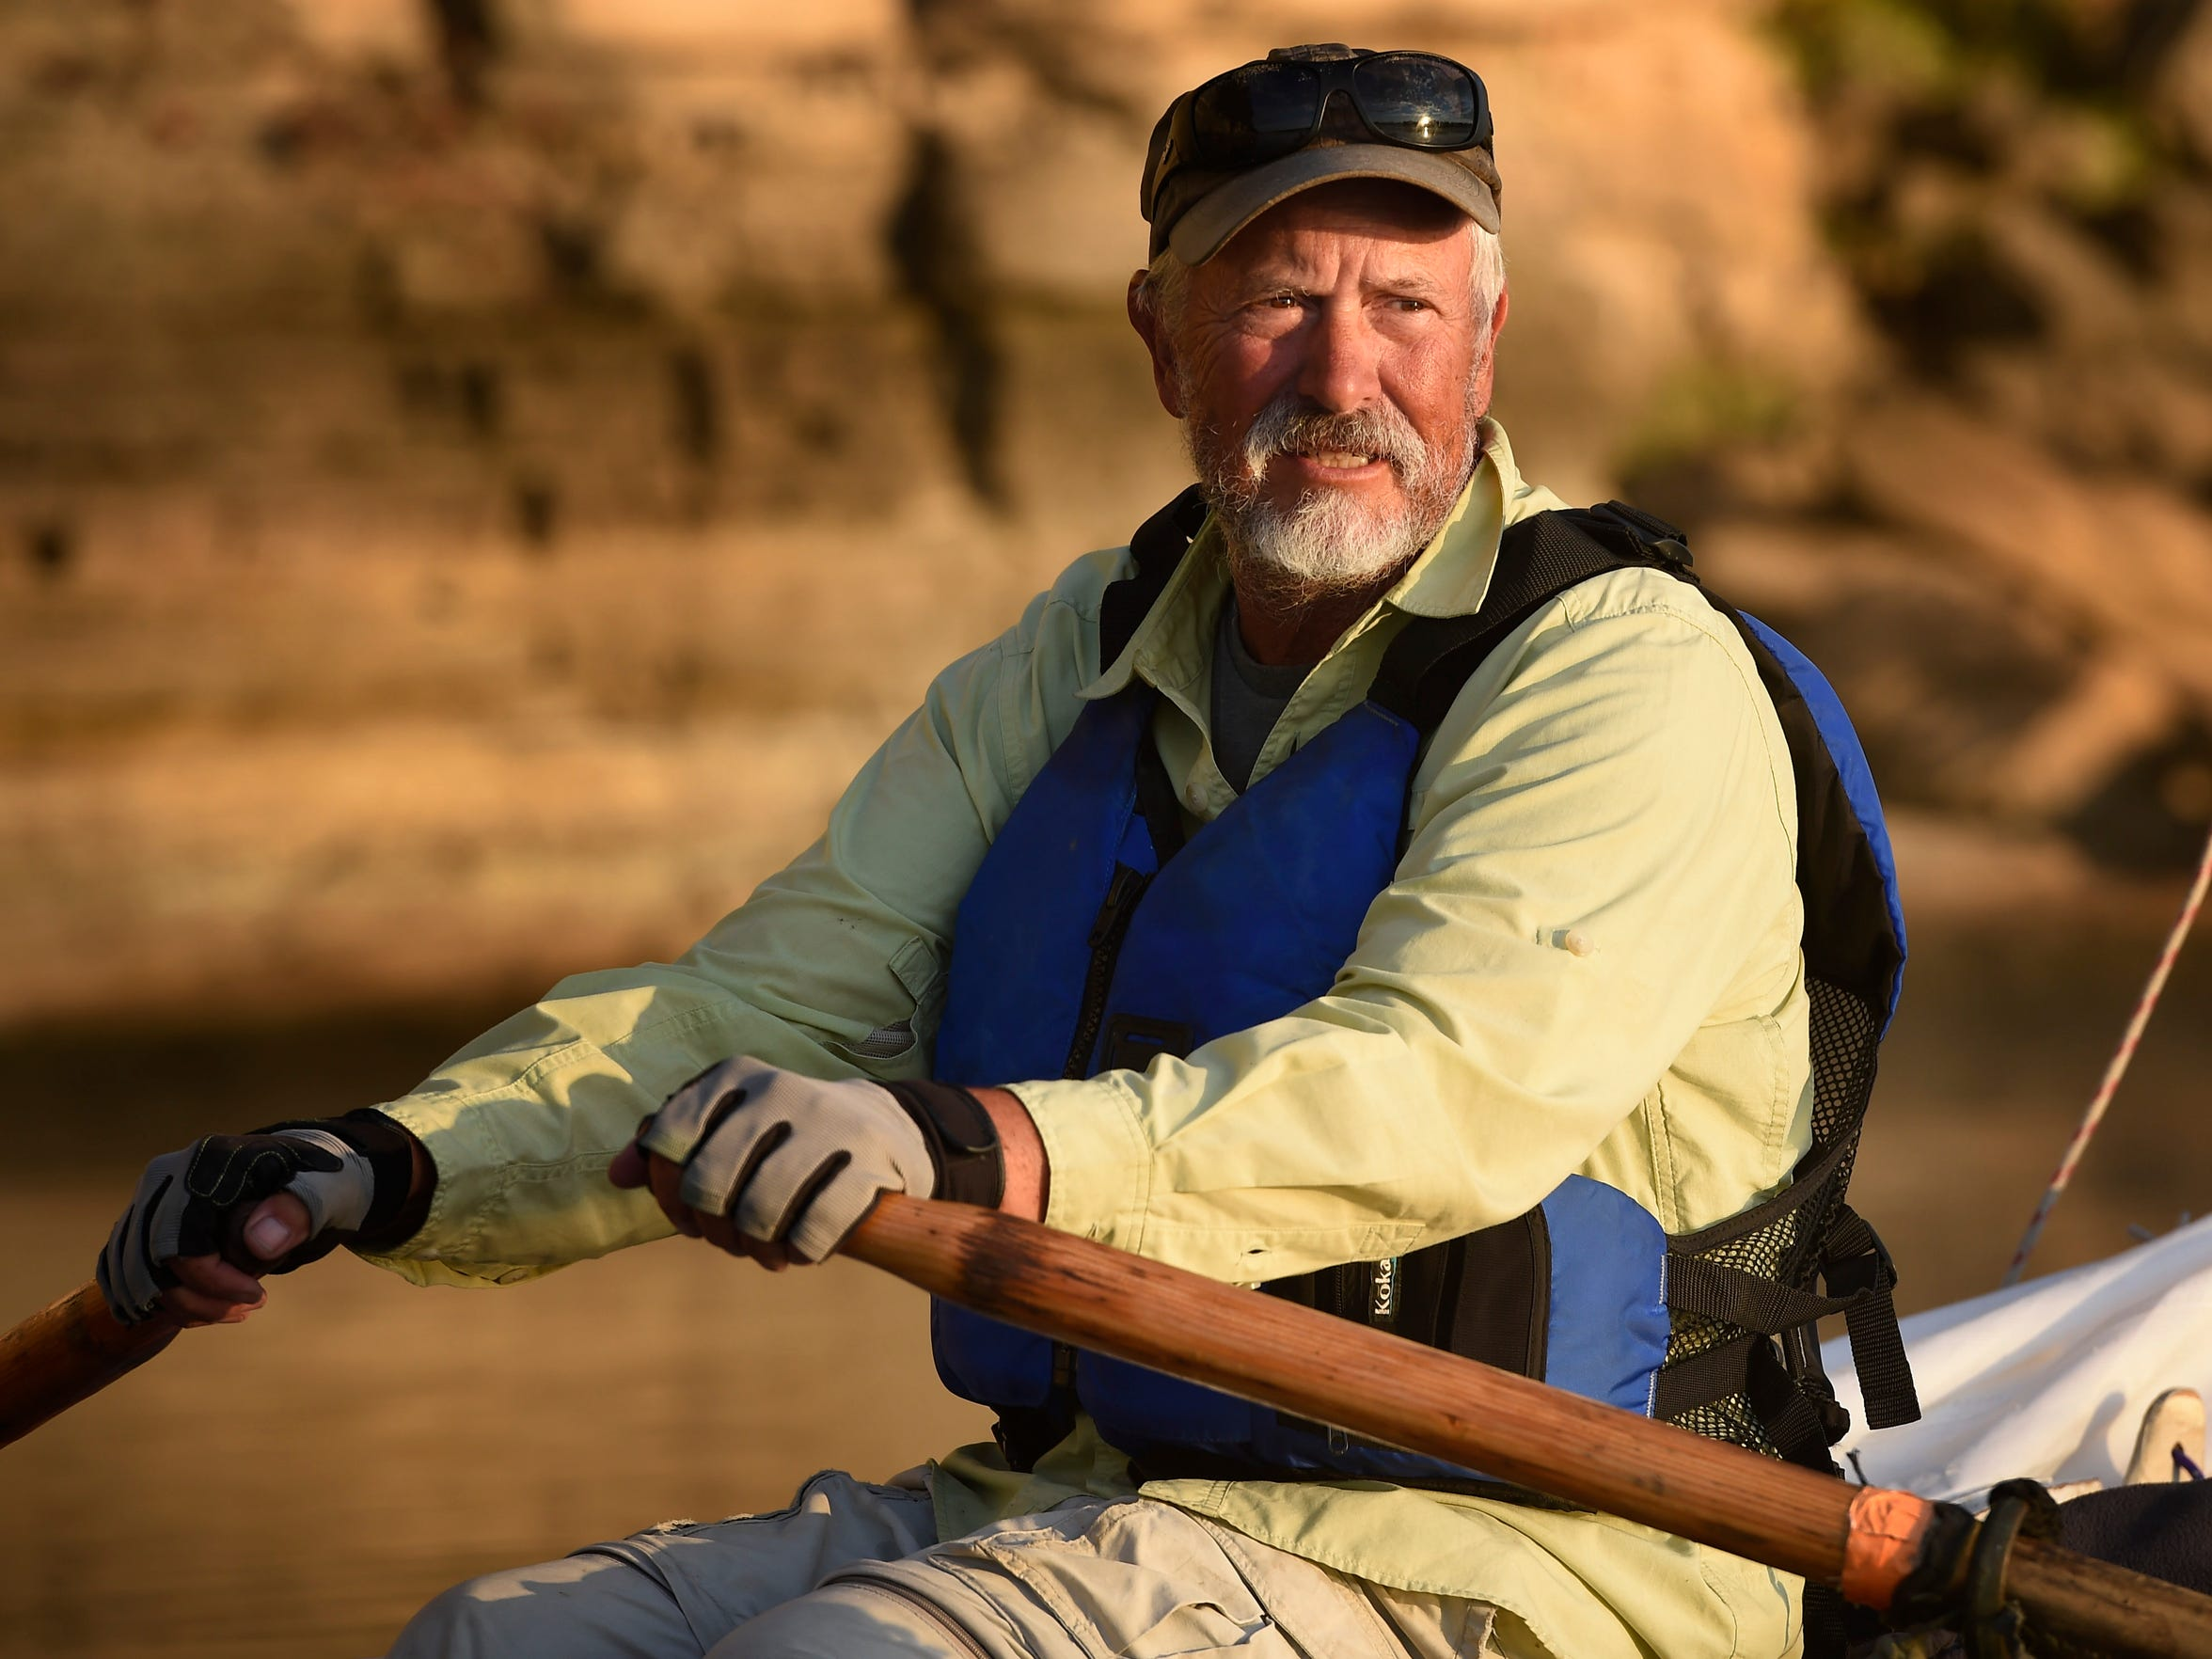 John Guider rows down the Tennessee River on Oct. 11, 2016, as he retraces the journey John Donelson took as one of the founders of Nashville.